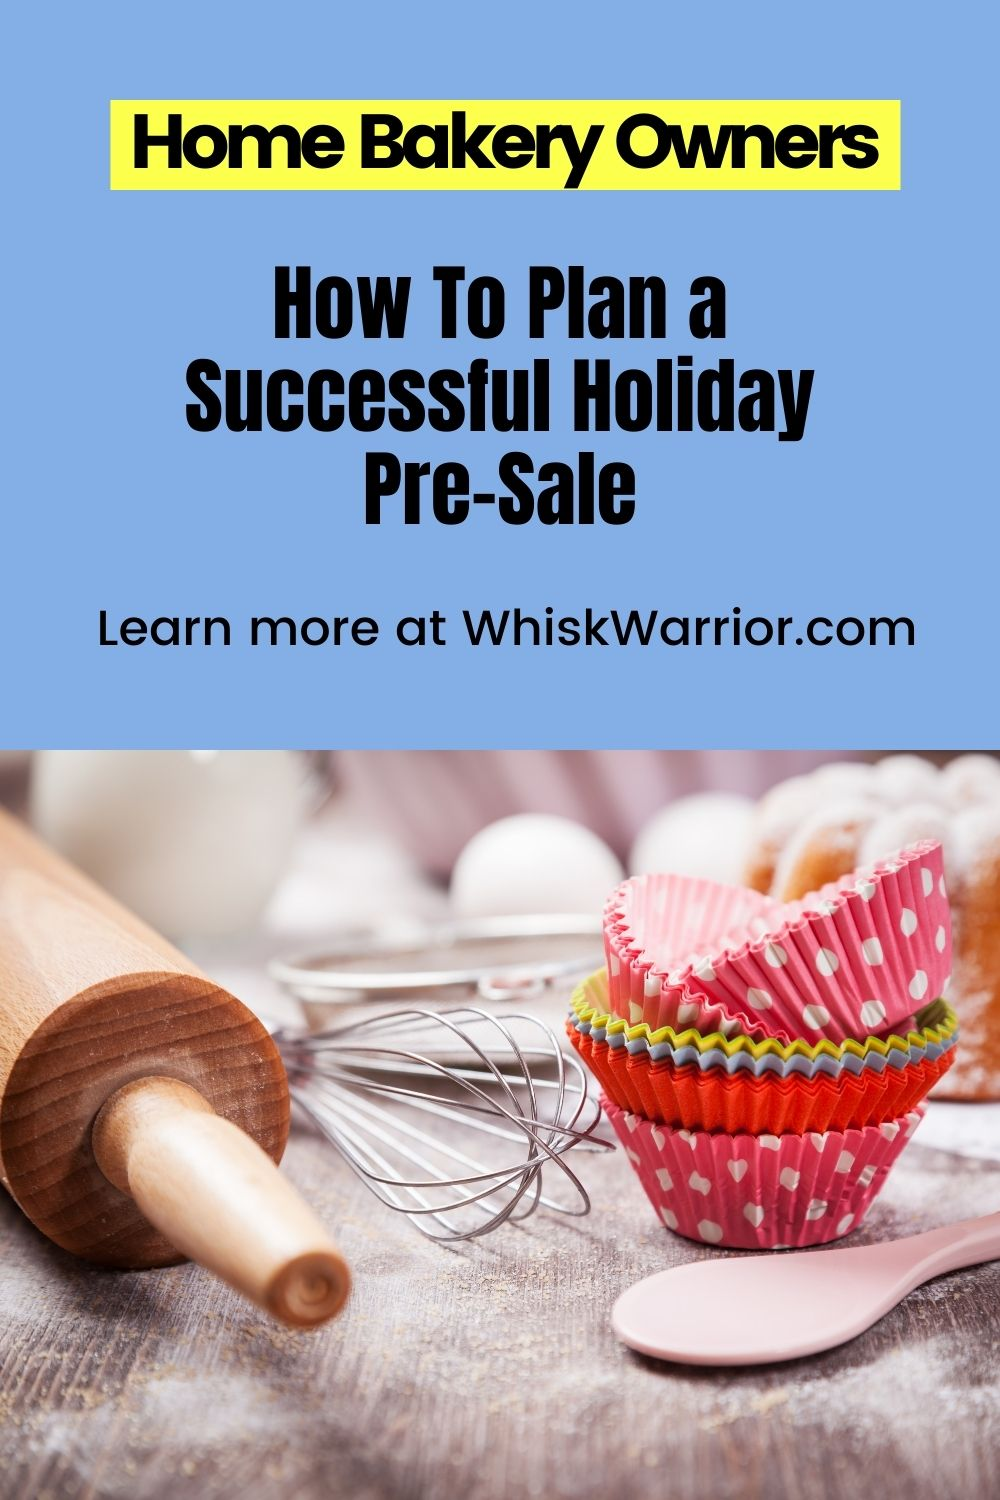 A course where bakery business owners will learn how to plan and execute a profitable Holiday Pre-Sale with a tried and tested step-by-step strategy. These nine video lessons show you the roadmap to pre-sale success.